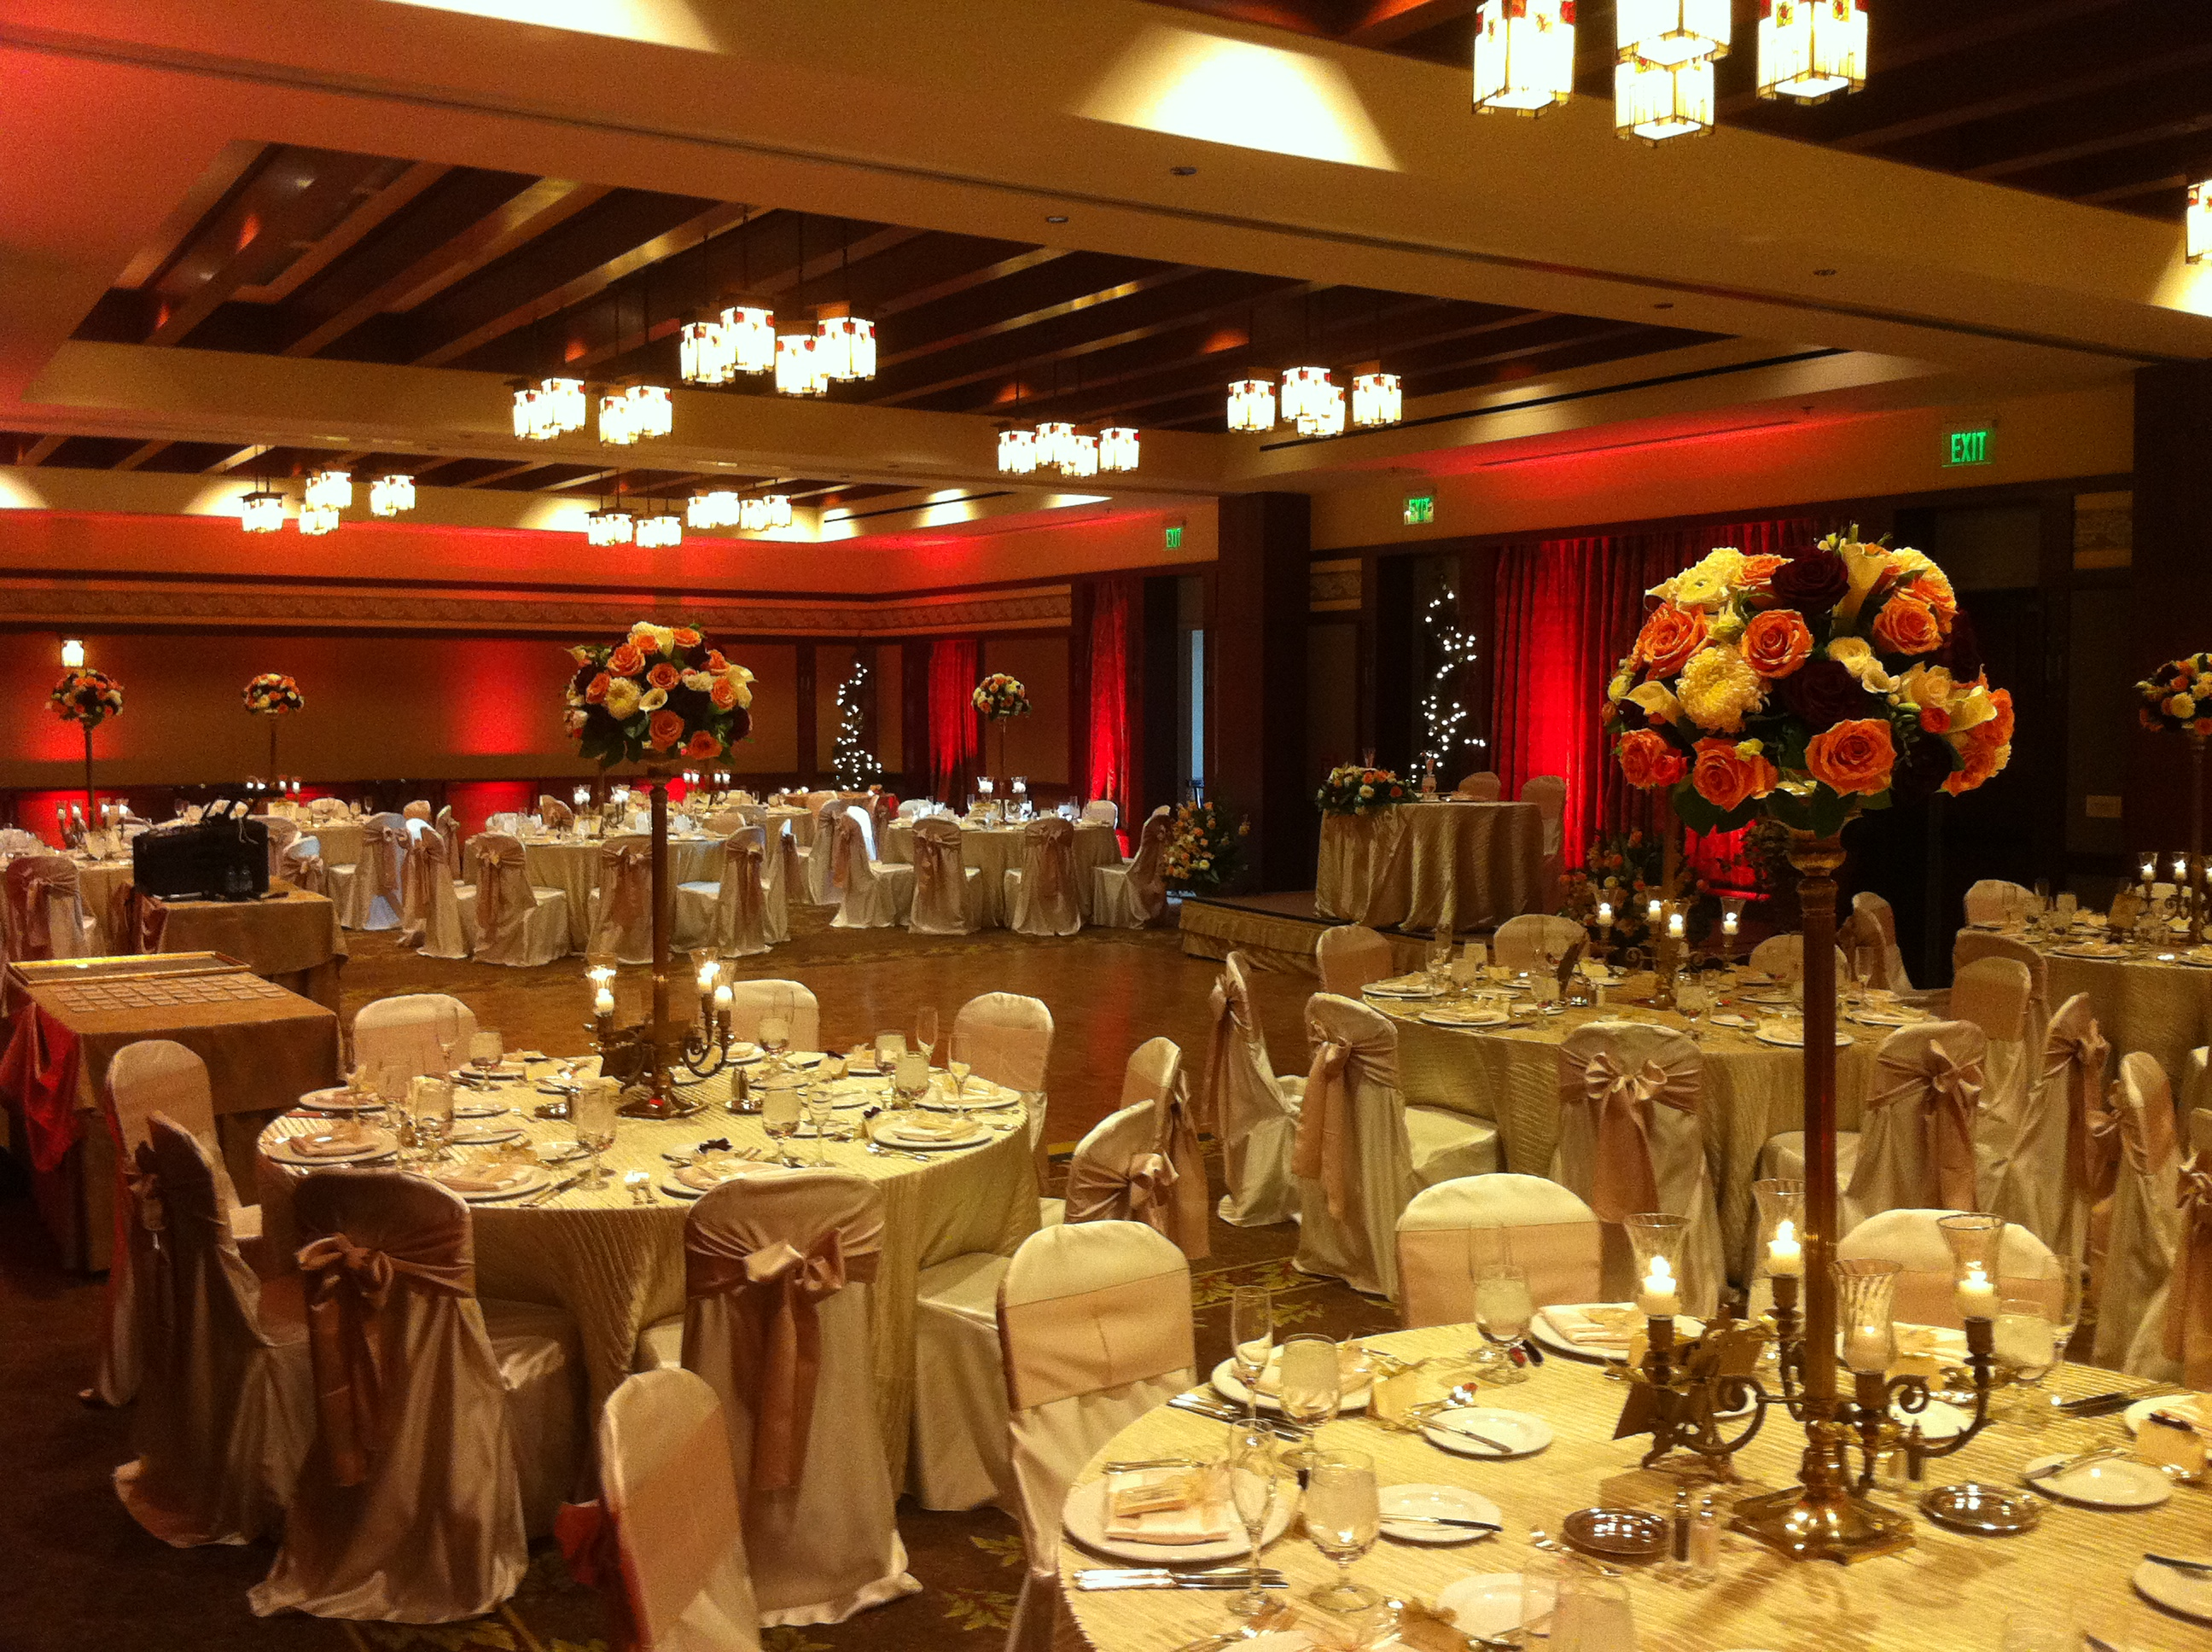 Affordable Wedding Locations Orange County Ca - Picture Ideas References